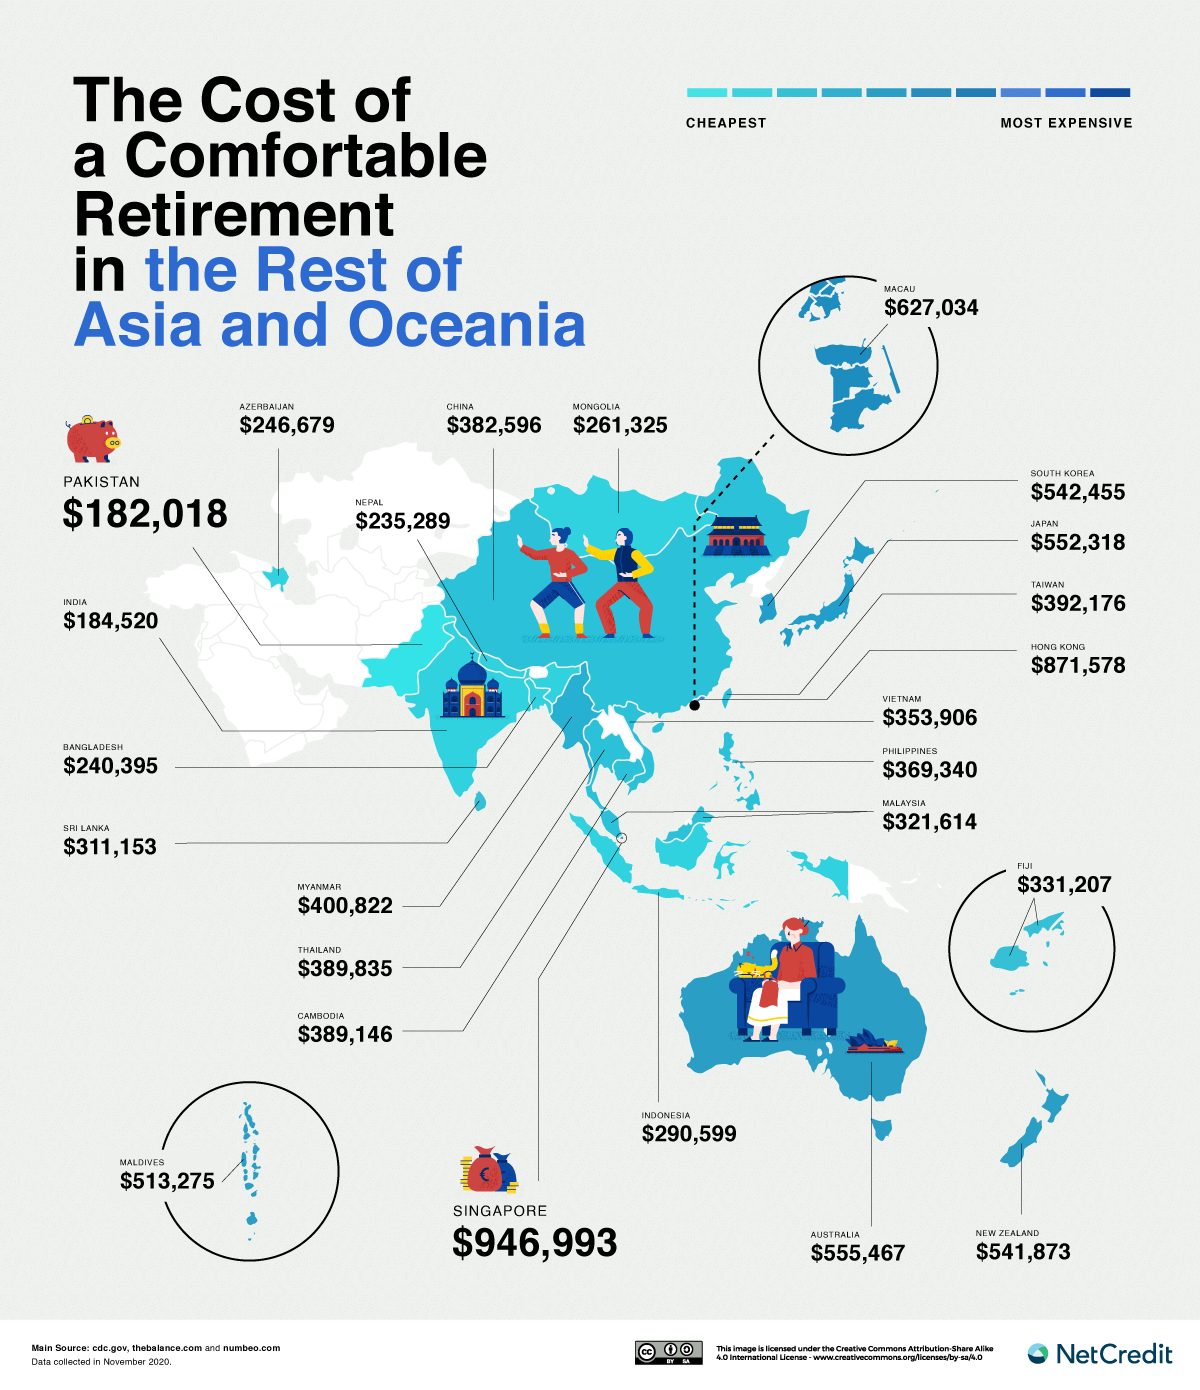 Rest of Asia and Oceania retirement